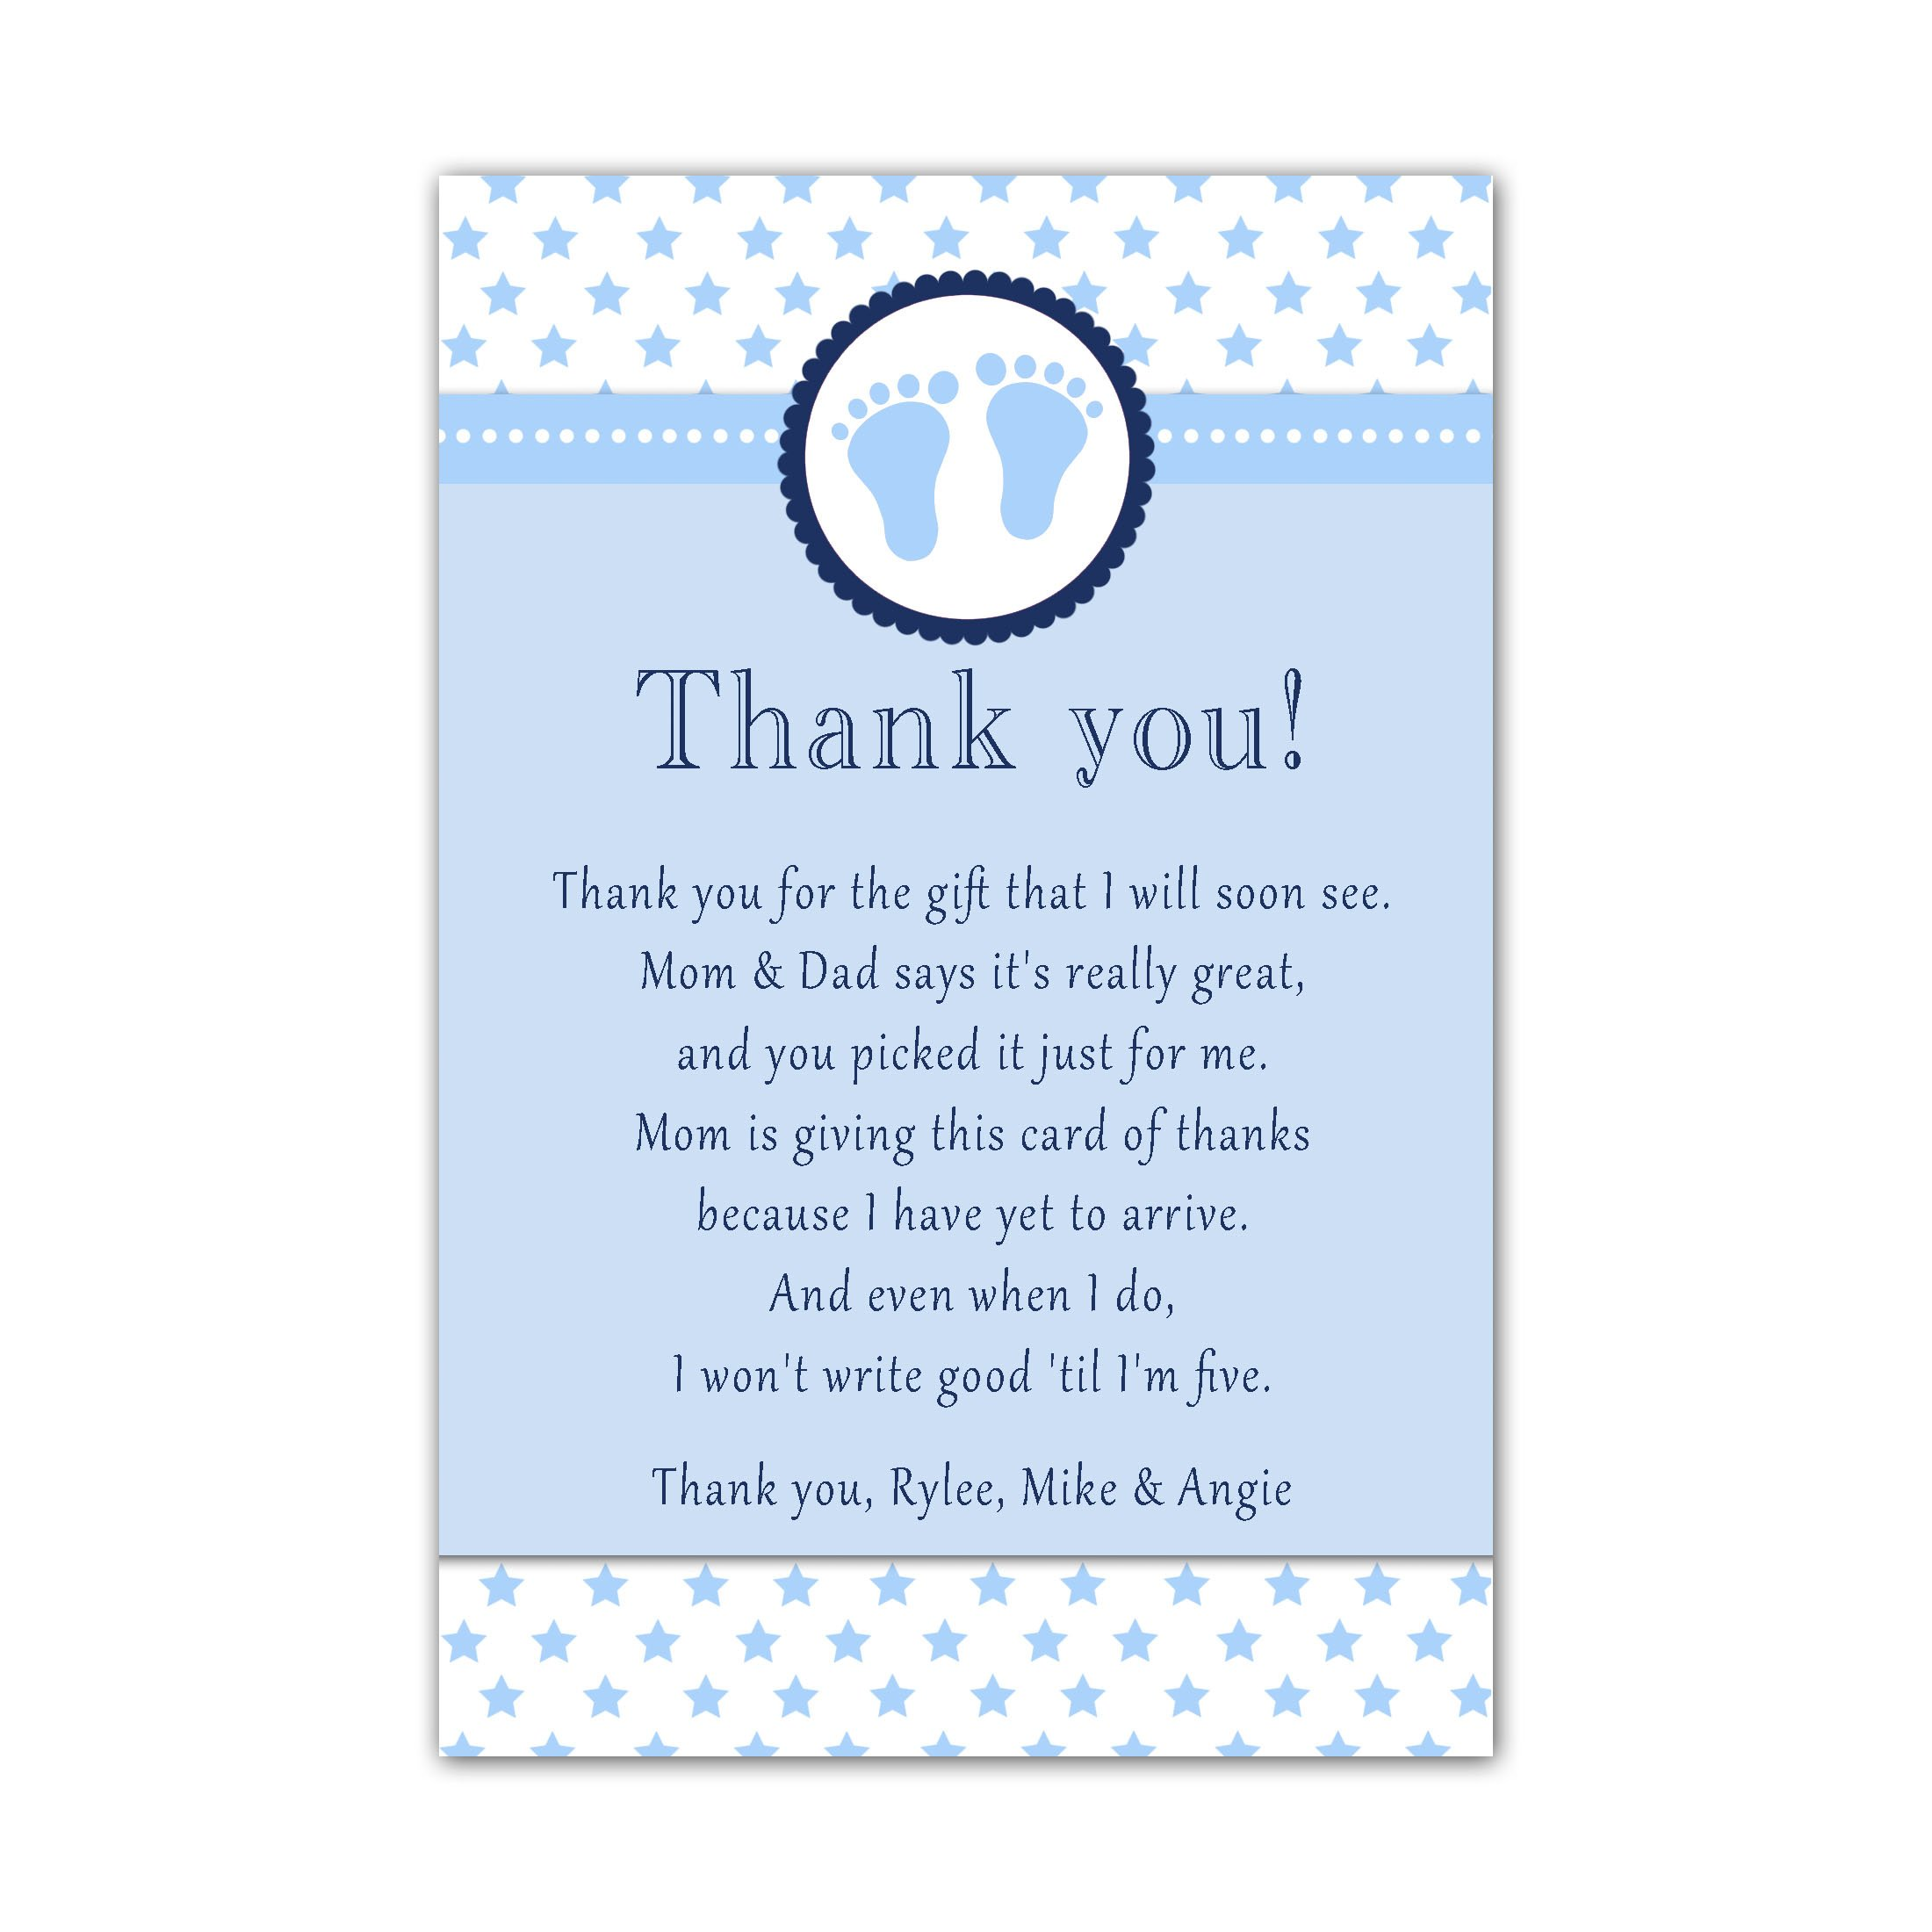 30 Thank You Cards Baby Boy Shower Cute Feet Stars Blue Personalized Cards Photo Paper